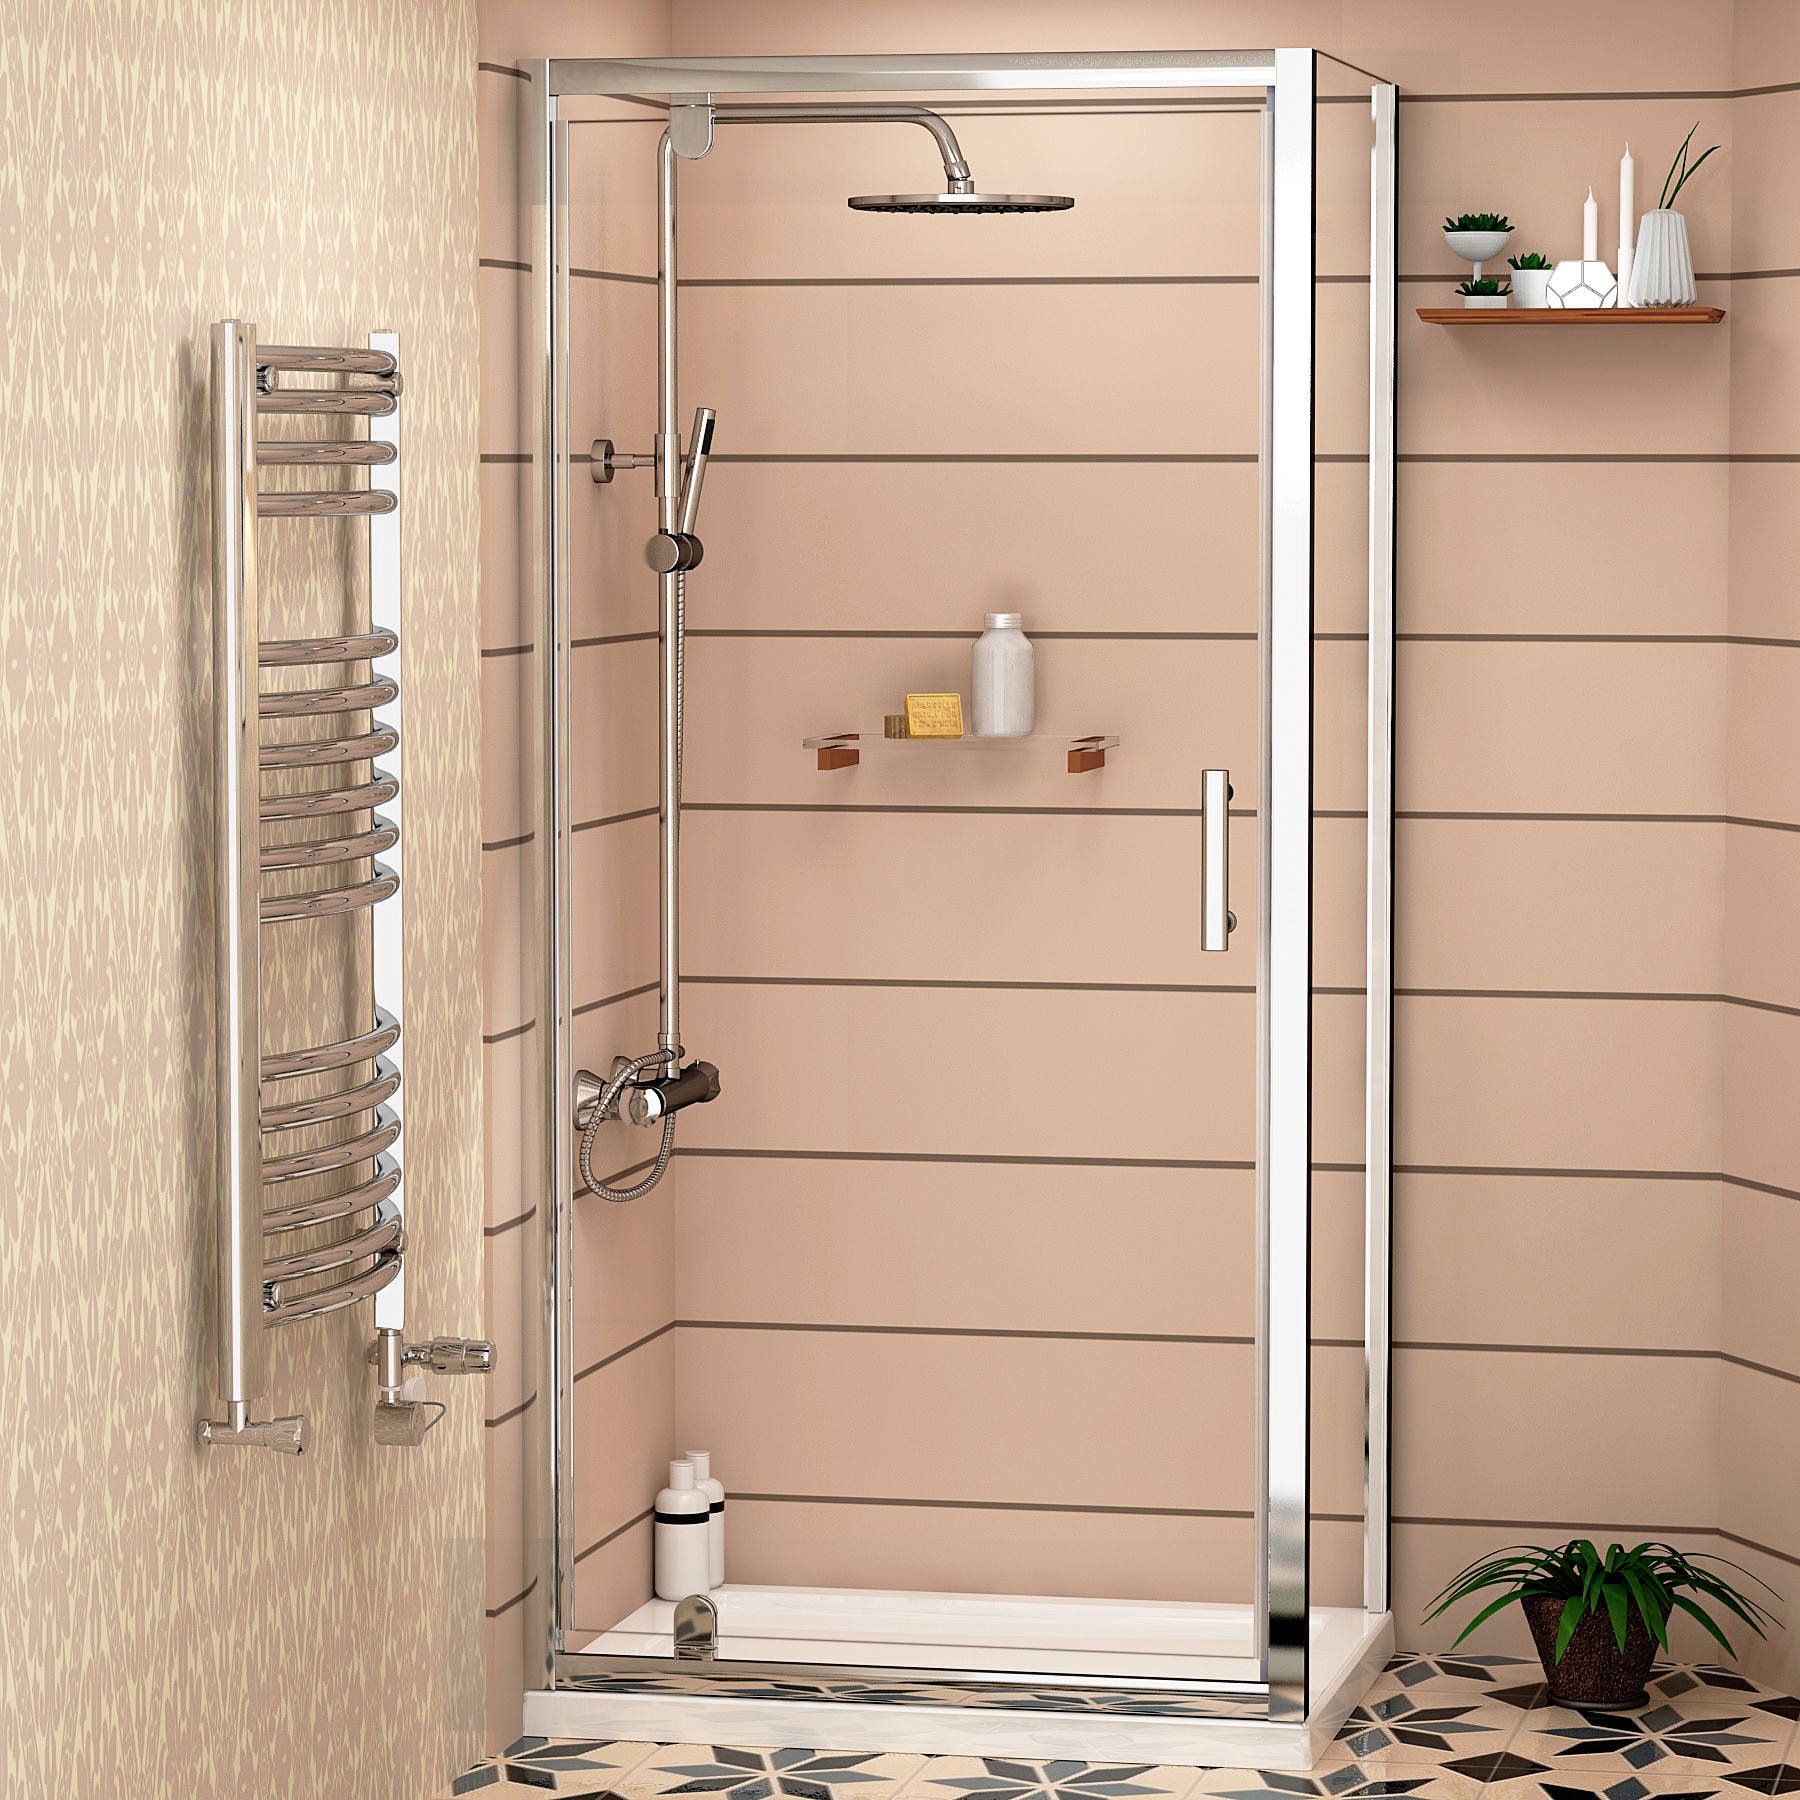 Easy Hinged Pivot Door Shower Enclosure And Tray 6mm